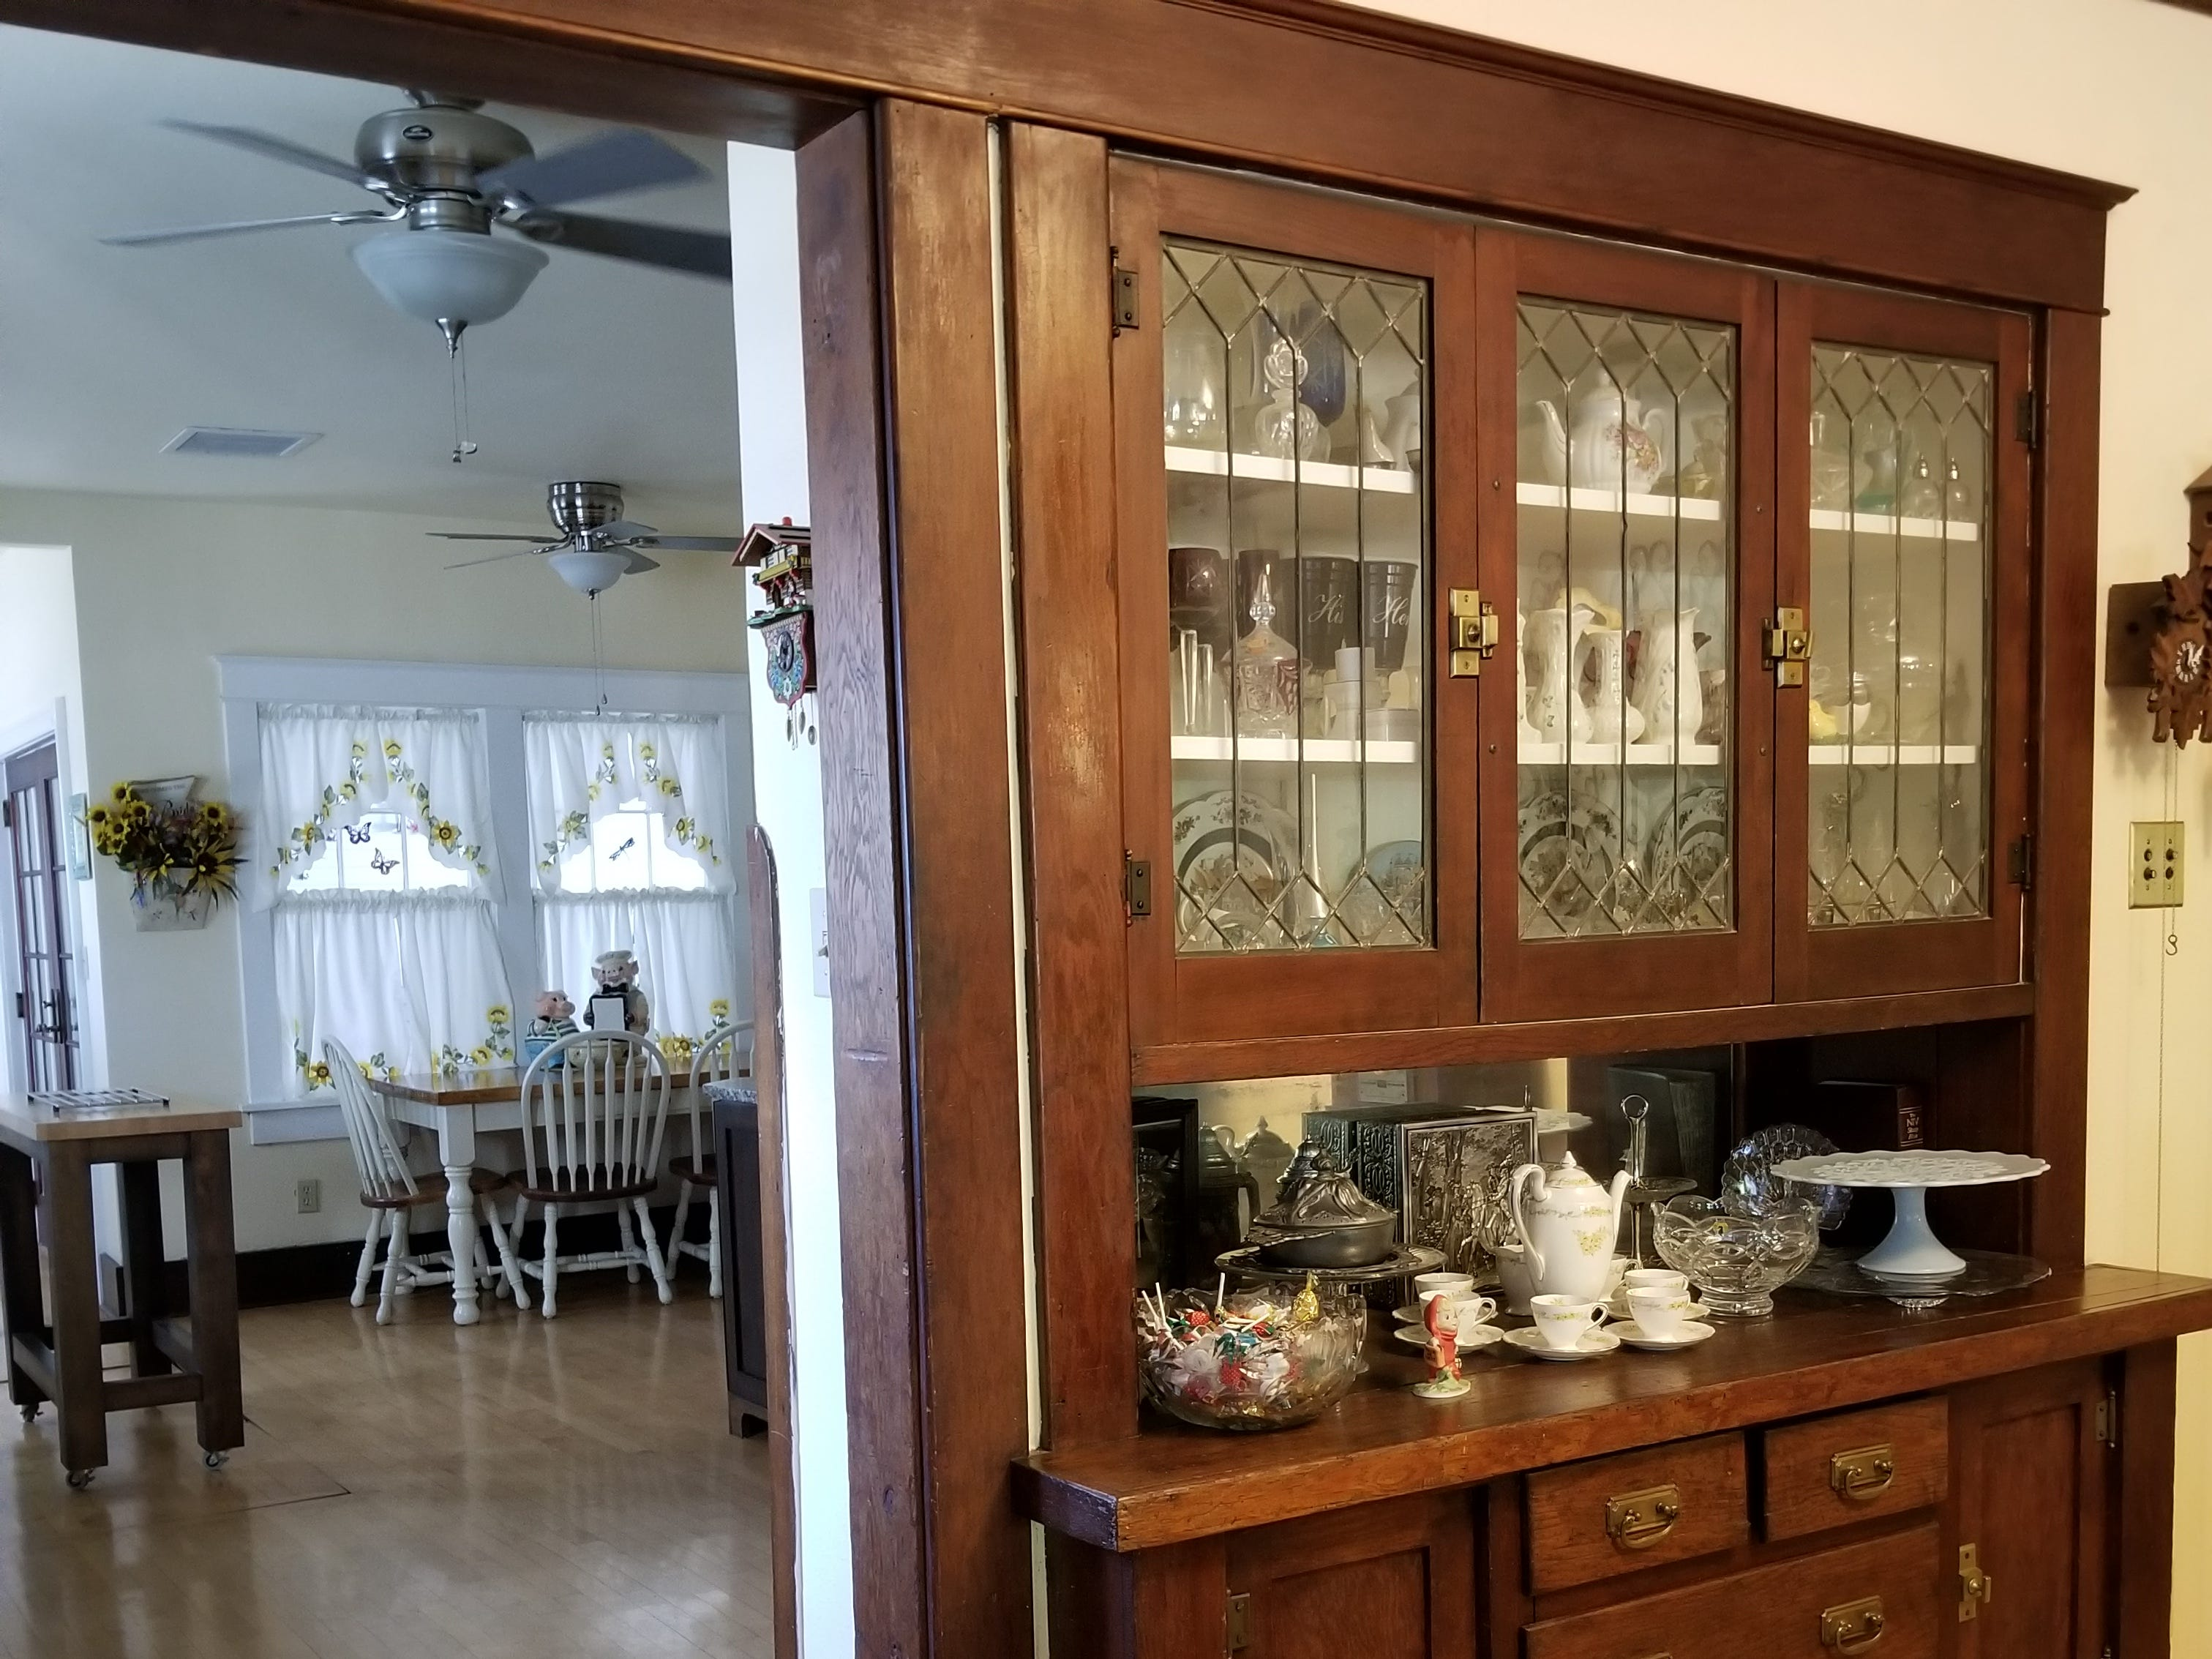 The dining room centerpiece is a built-in china cabinet that has withstood the test of time. Leaded glass panels in the cabinet doors reflect the history of the room.